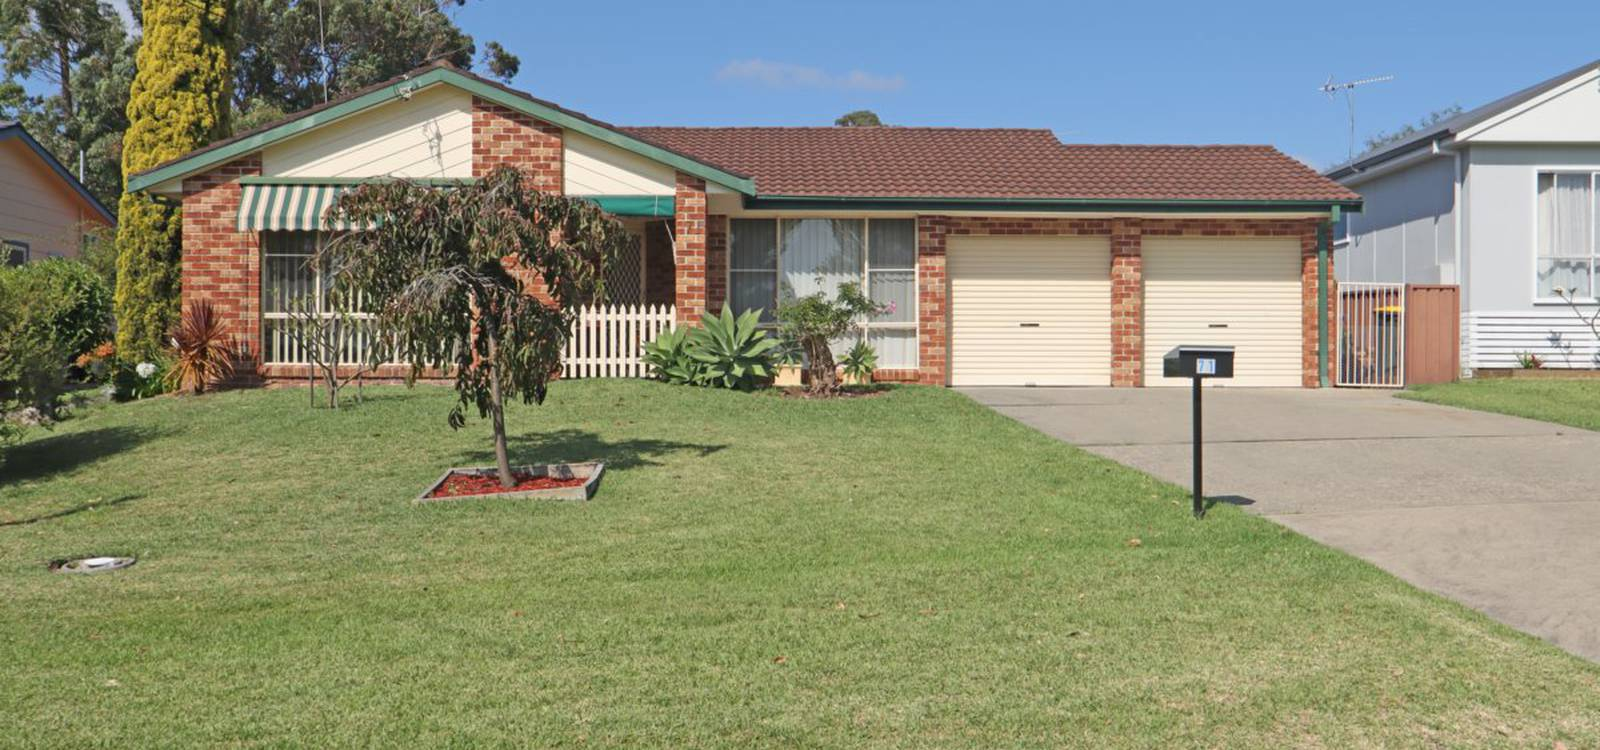 71 River Road SUSSEX INLET, NSW 2540 - photo 1